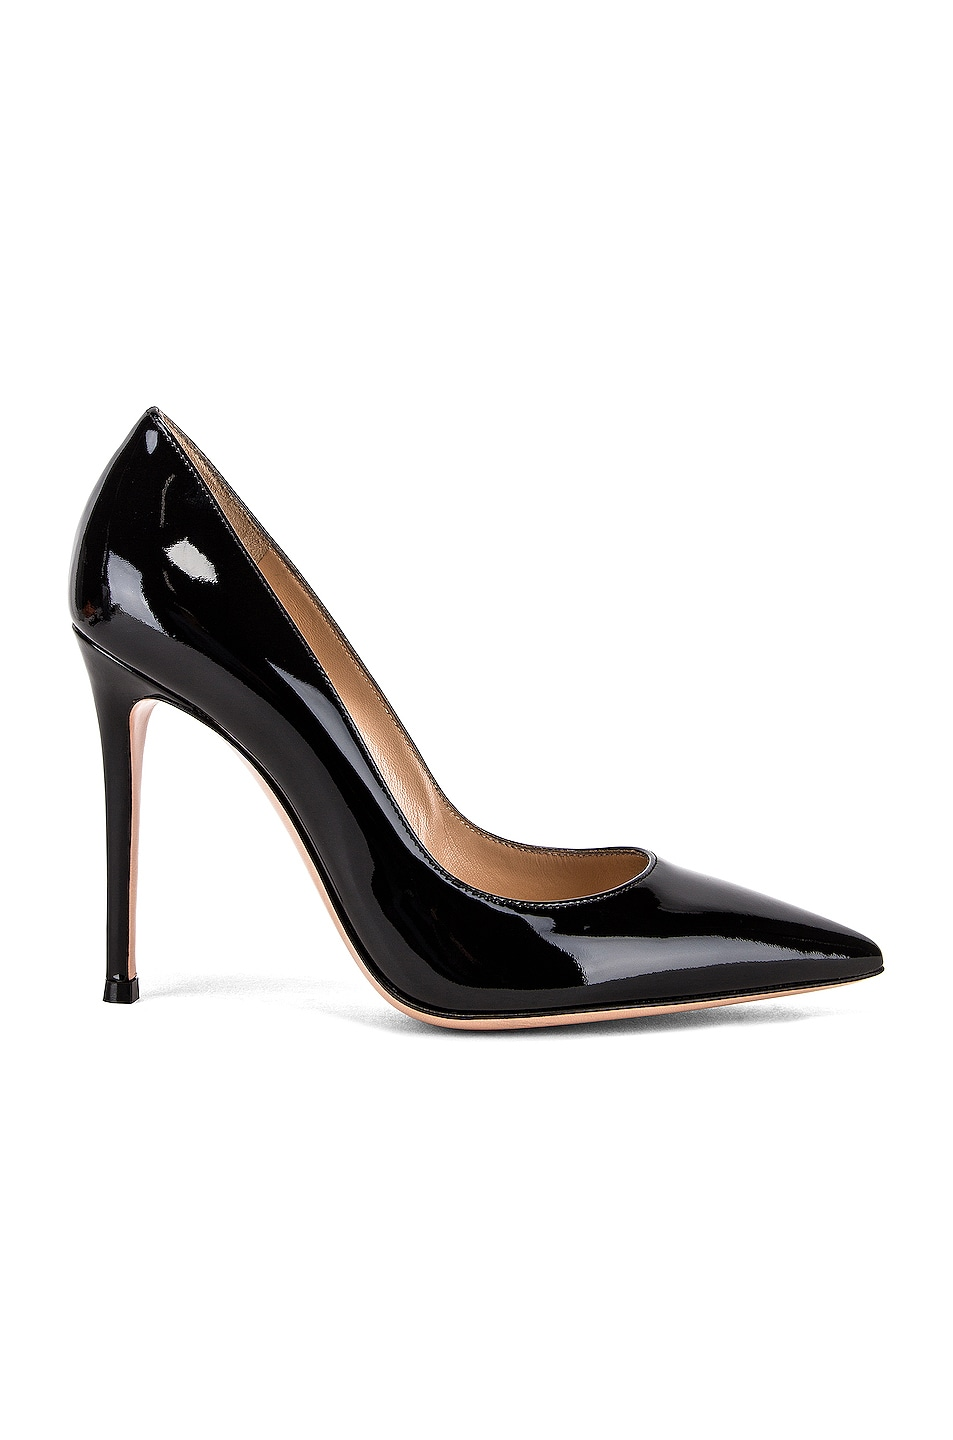 Image 1 of Gianvito Rossi Patent Leather Gianvito Pumps in Black